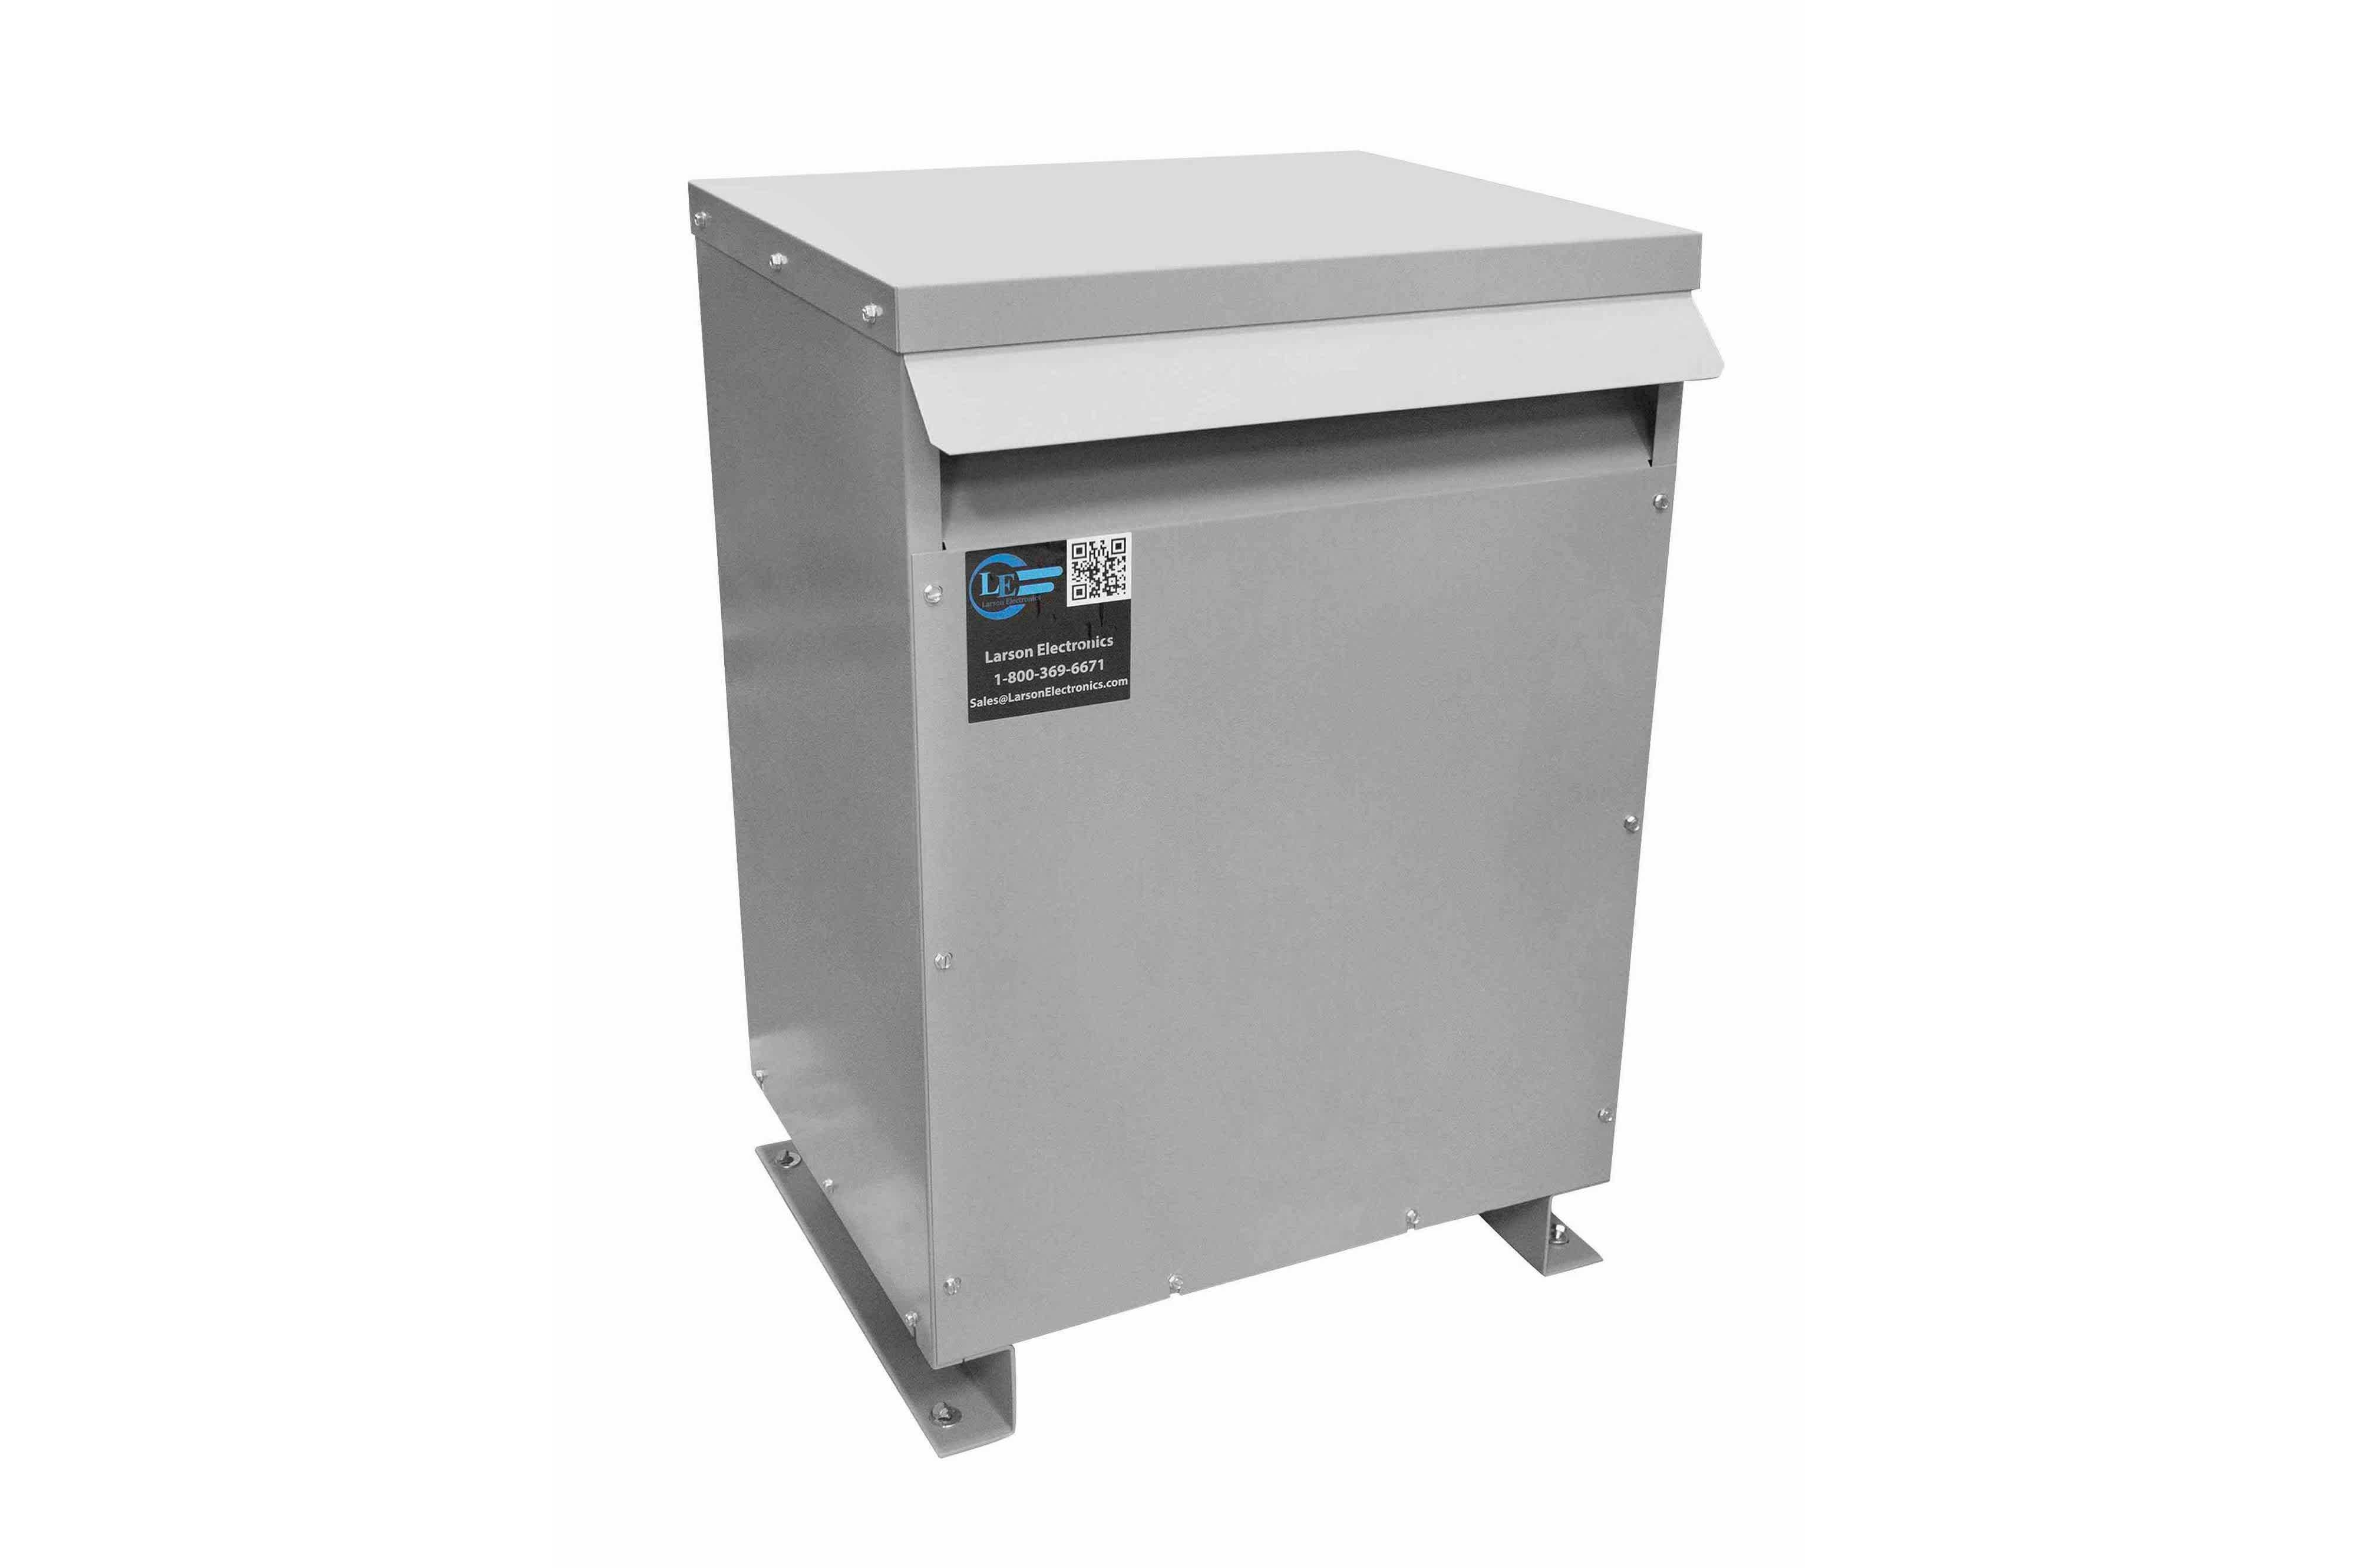 14 kVA 3PH Isolation Transformer, 600V Wye Primary, 240V Delta Secondary, N3R, Ventilated, 60 Hz